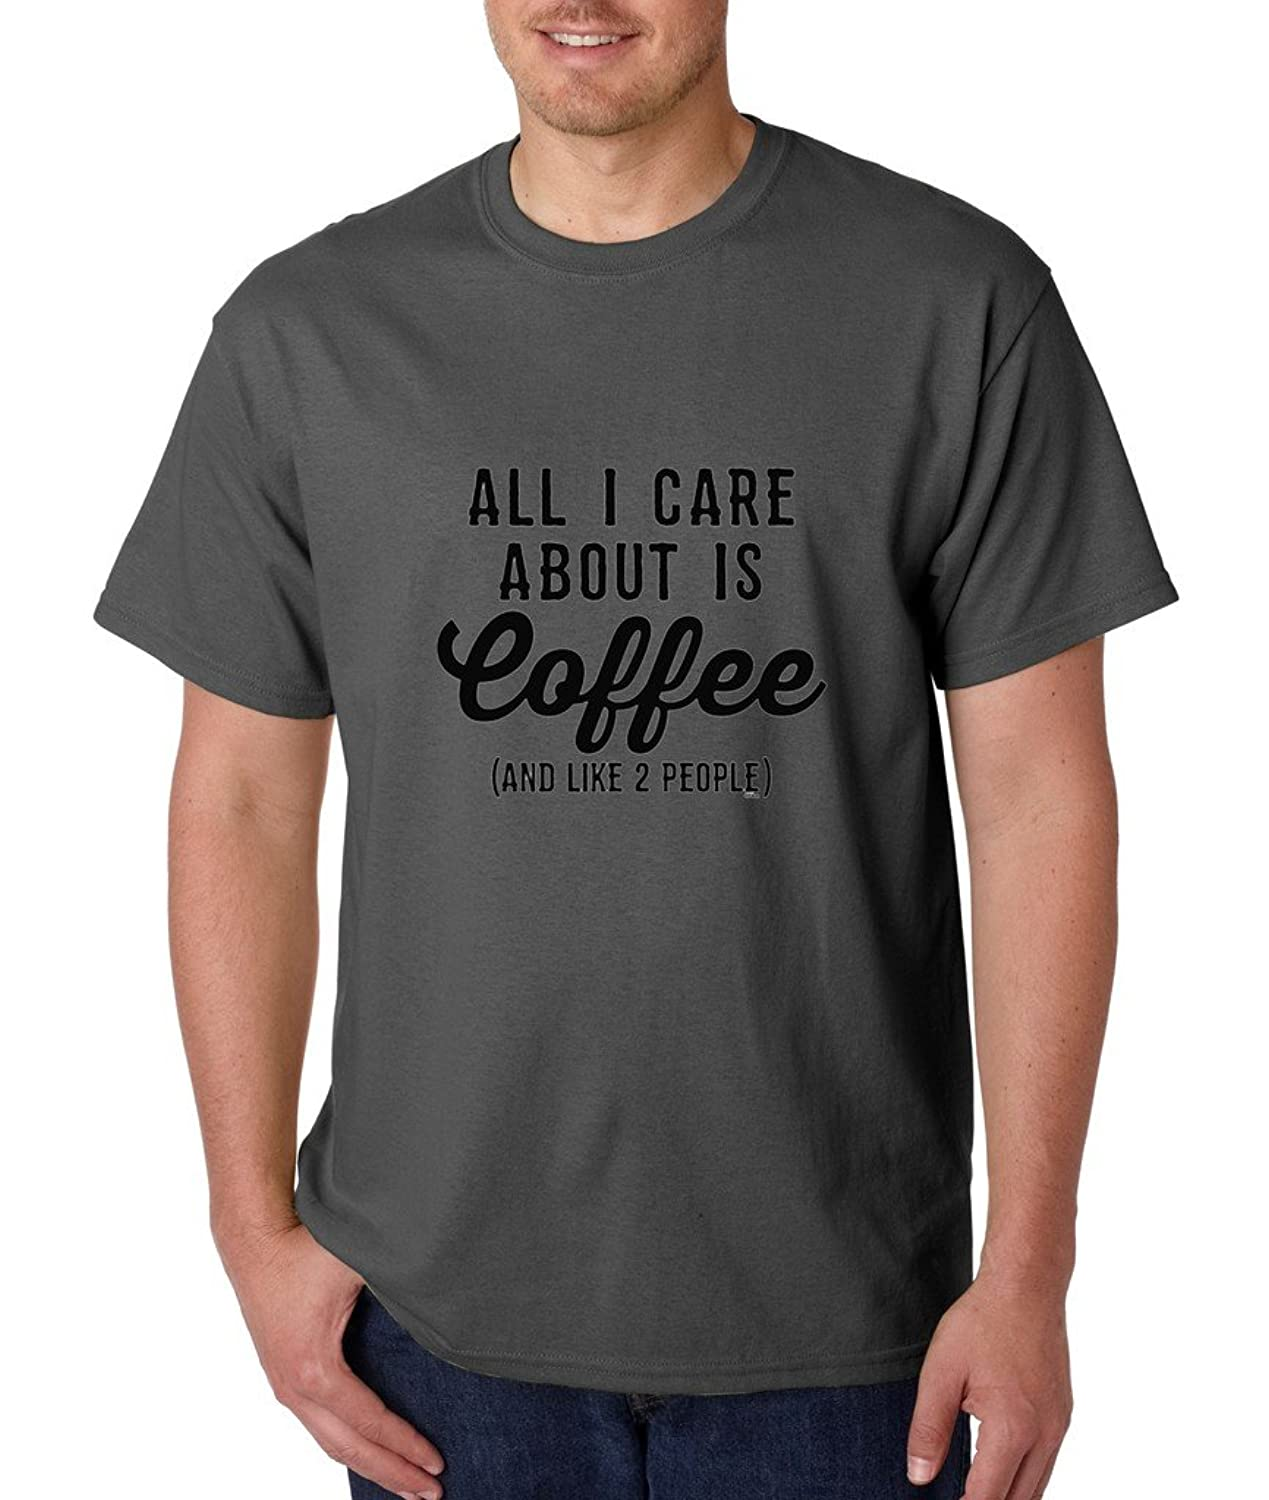 All I Care About is Coffee T-shirt Coffee Lover Happy Caffeine Shirts